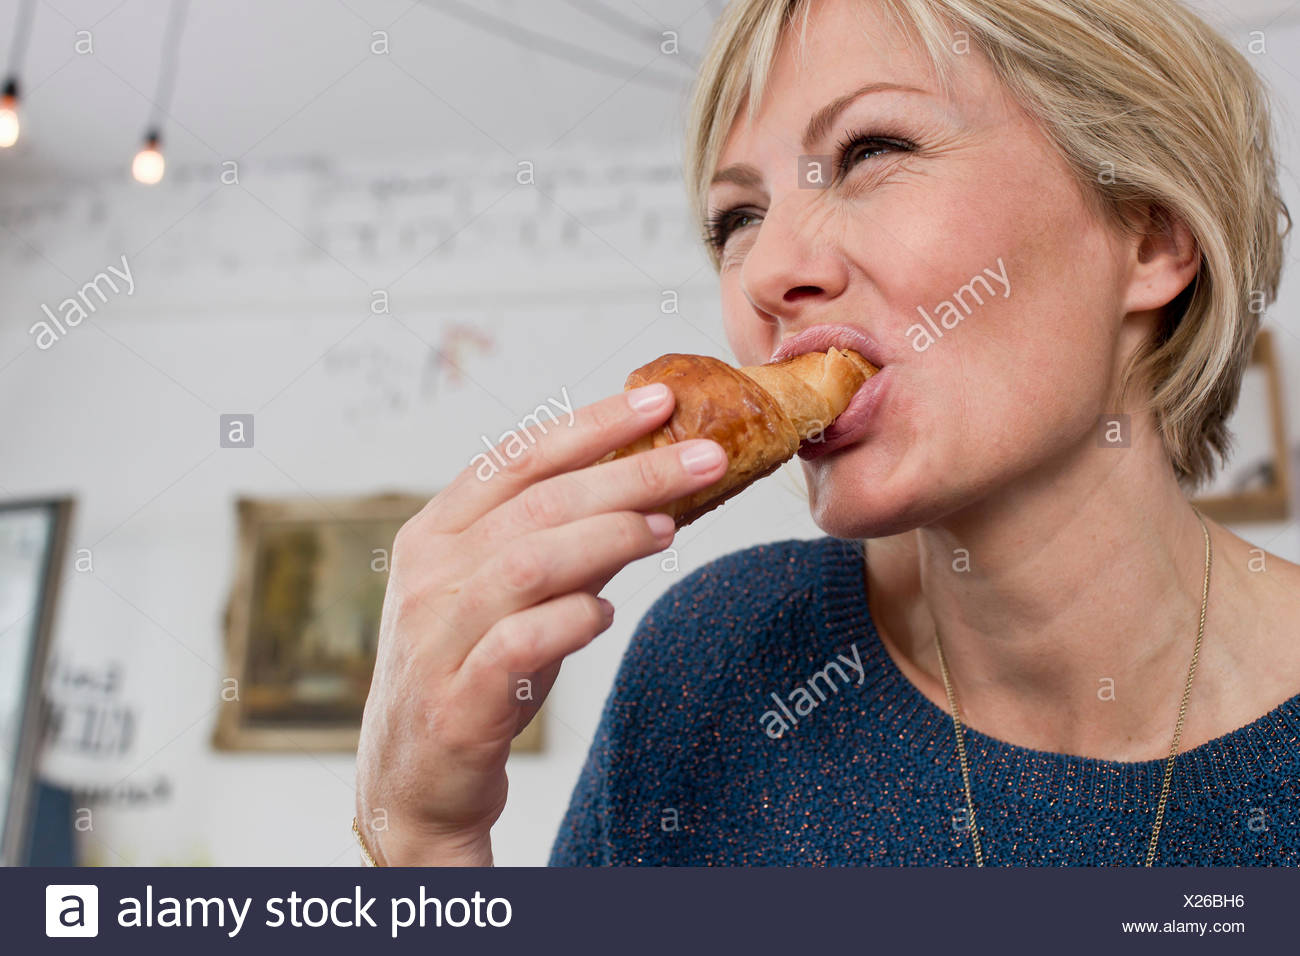 Mid adult woman eating croissant Photo Stock